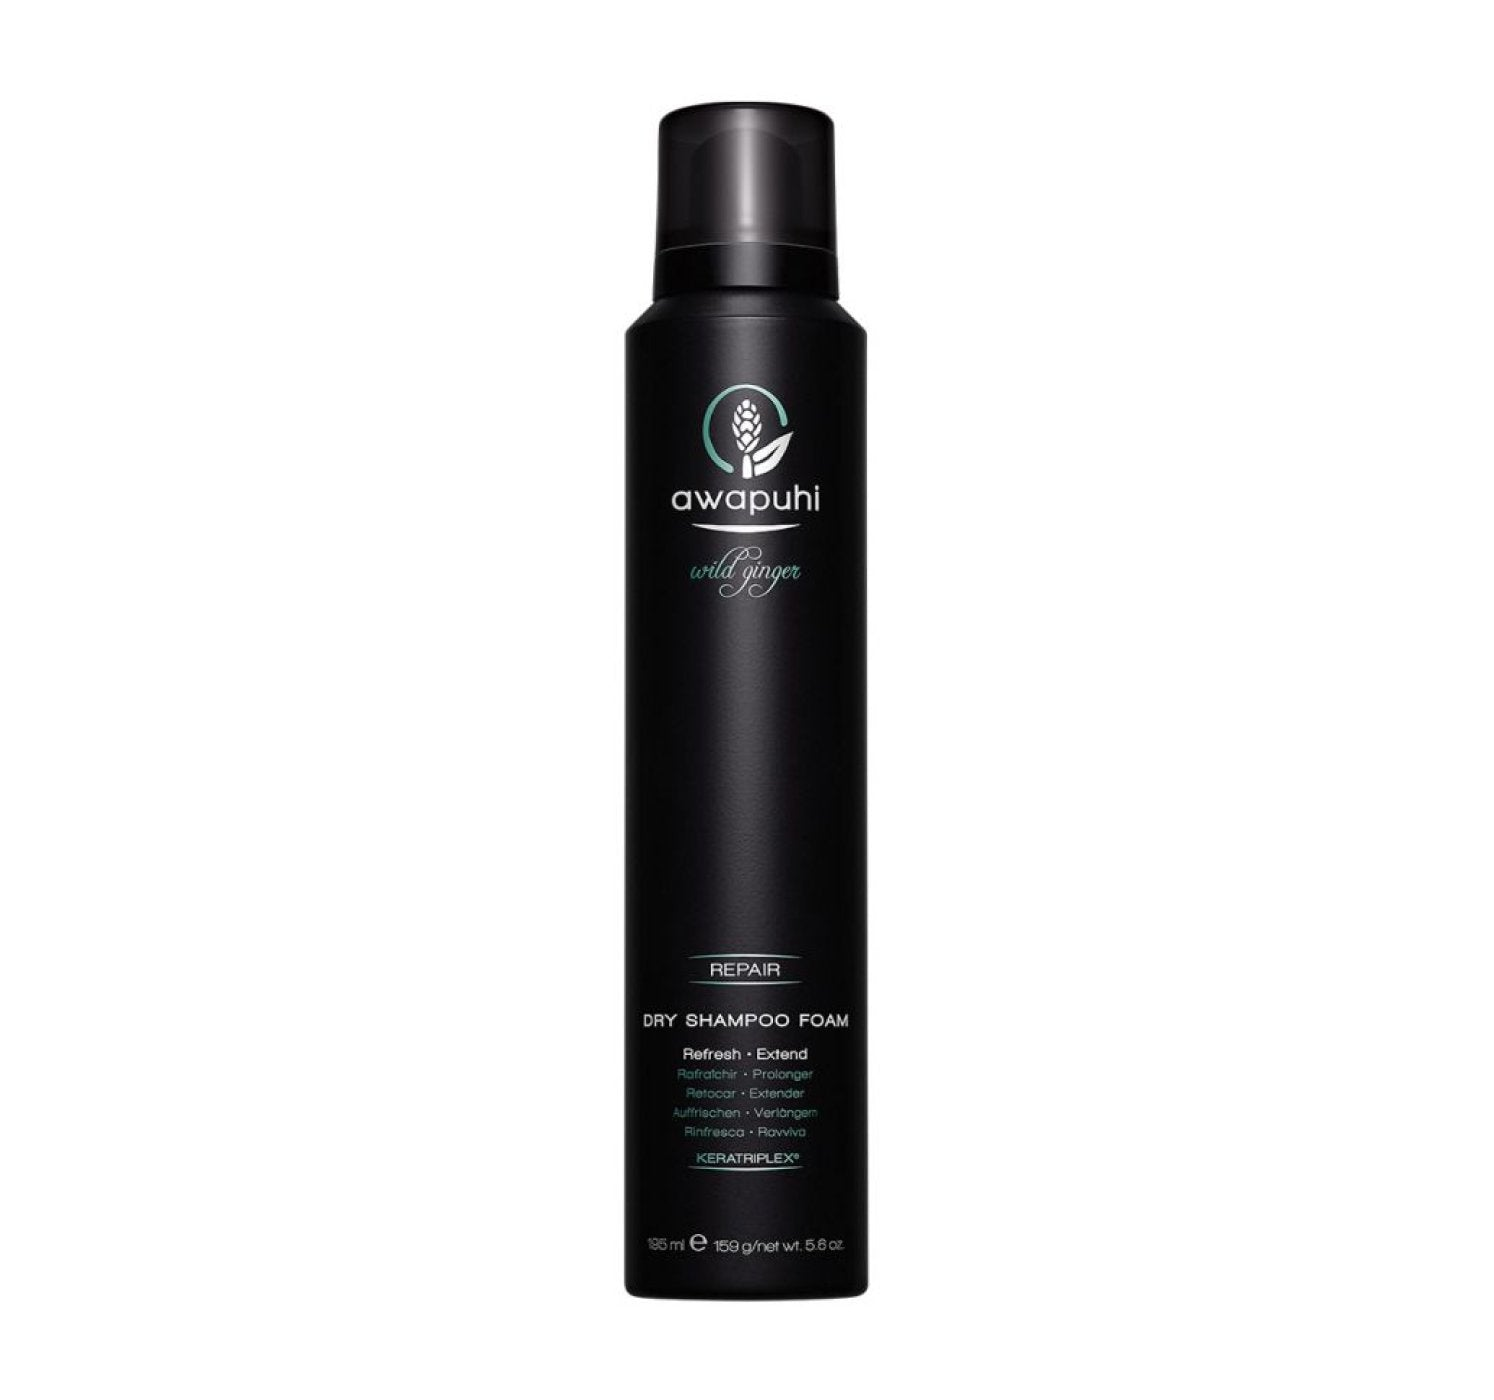 Paul Mitchell Awapuhi Dry Shampoo Foam 195ml